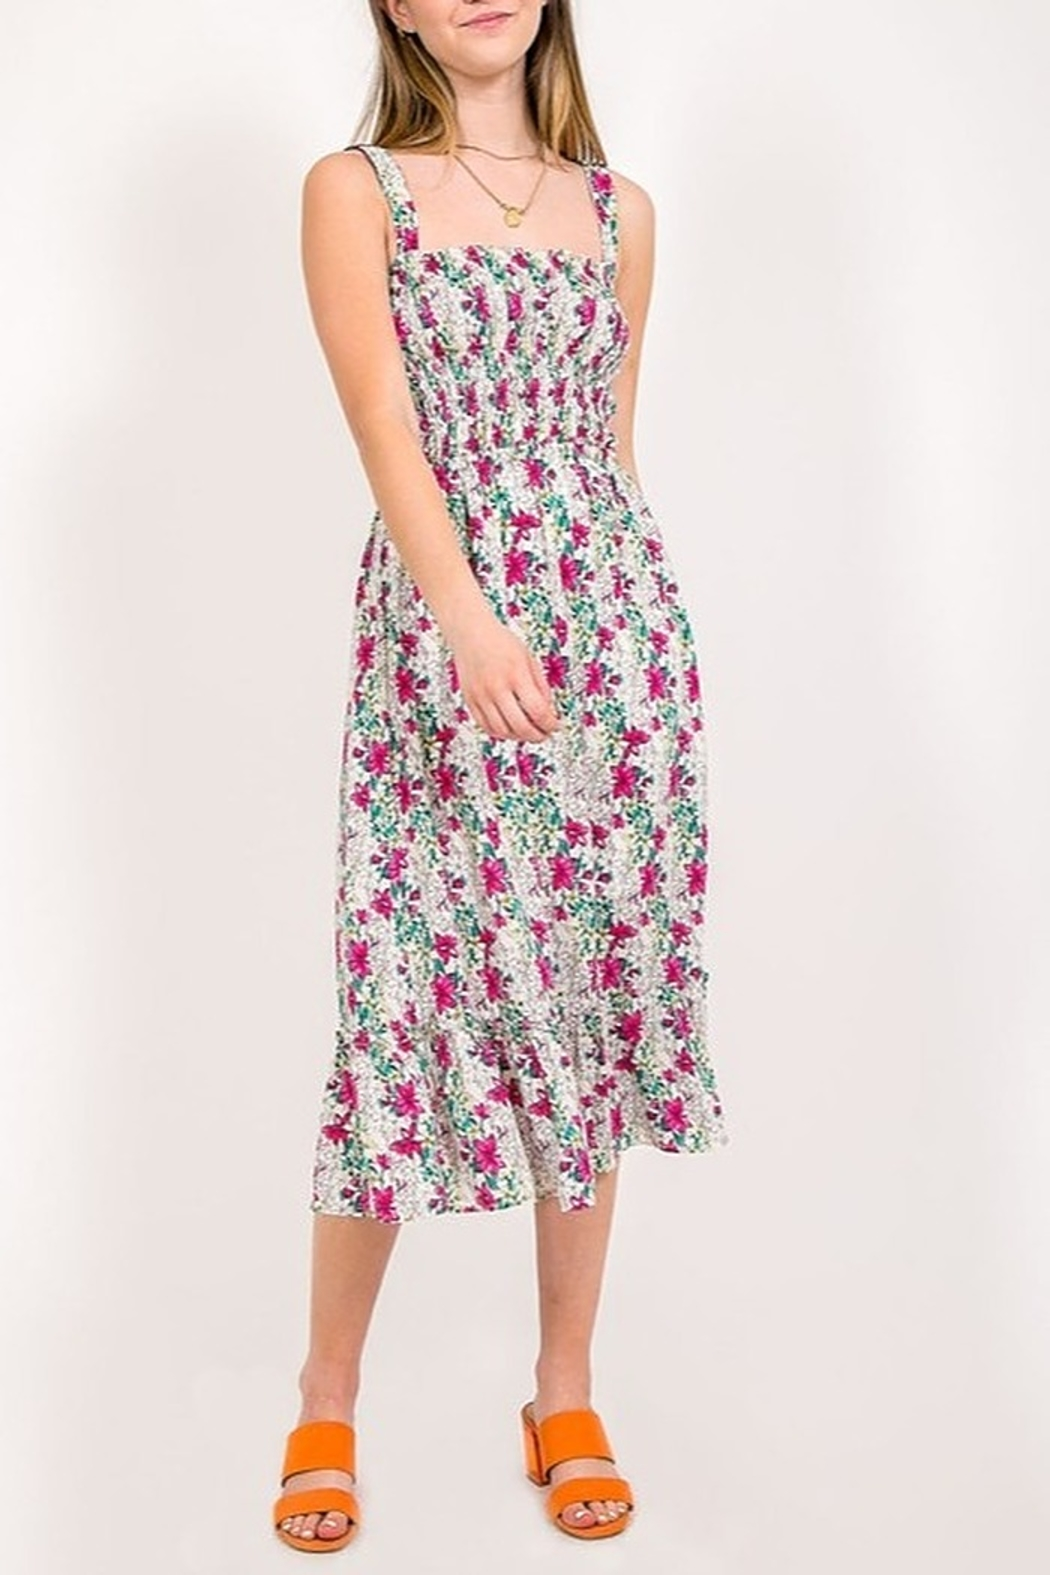 Very J Floral Print Midi Dress - Front Cropped Image